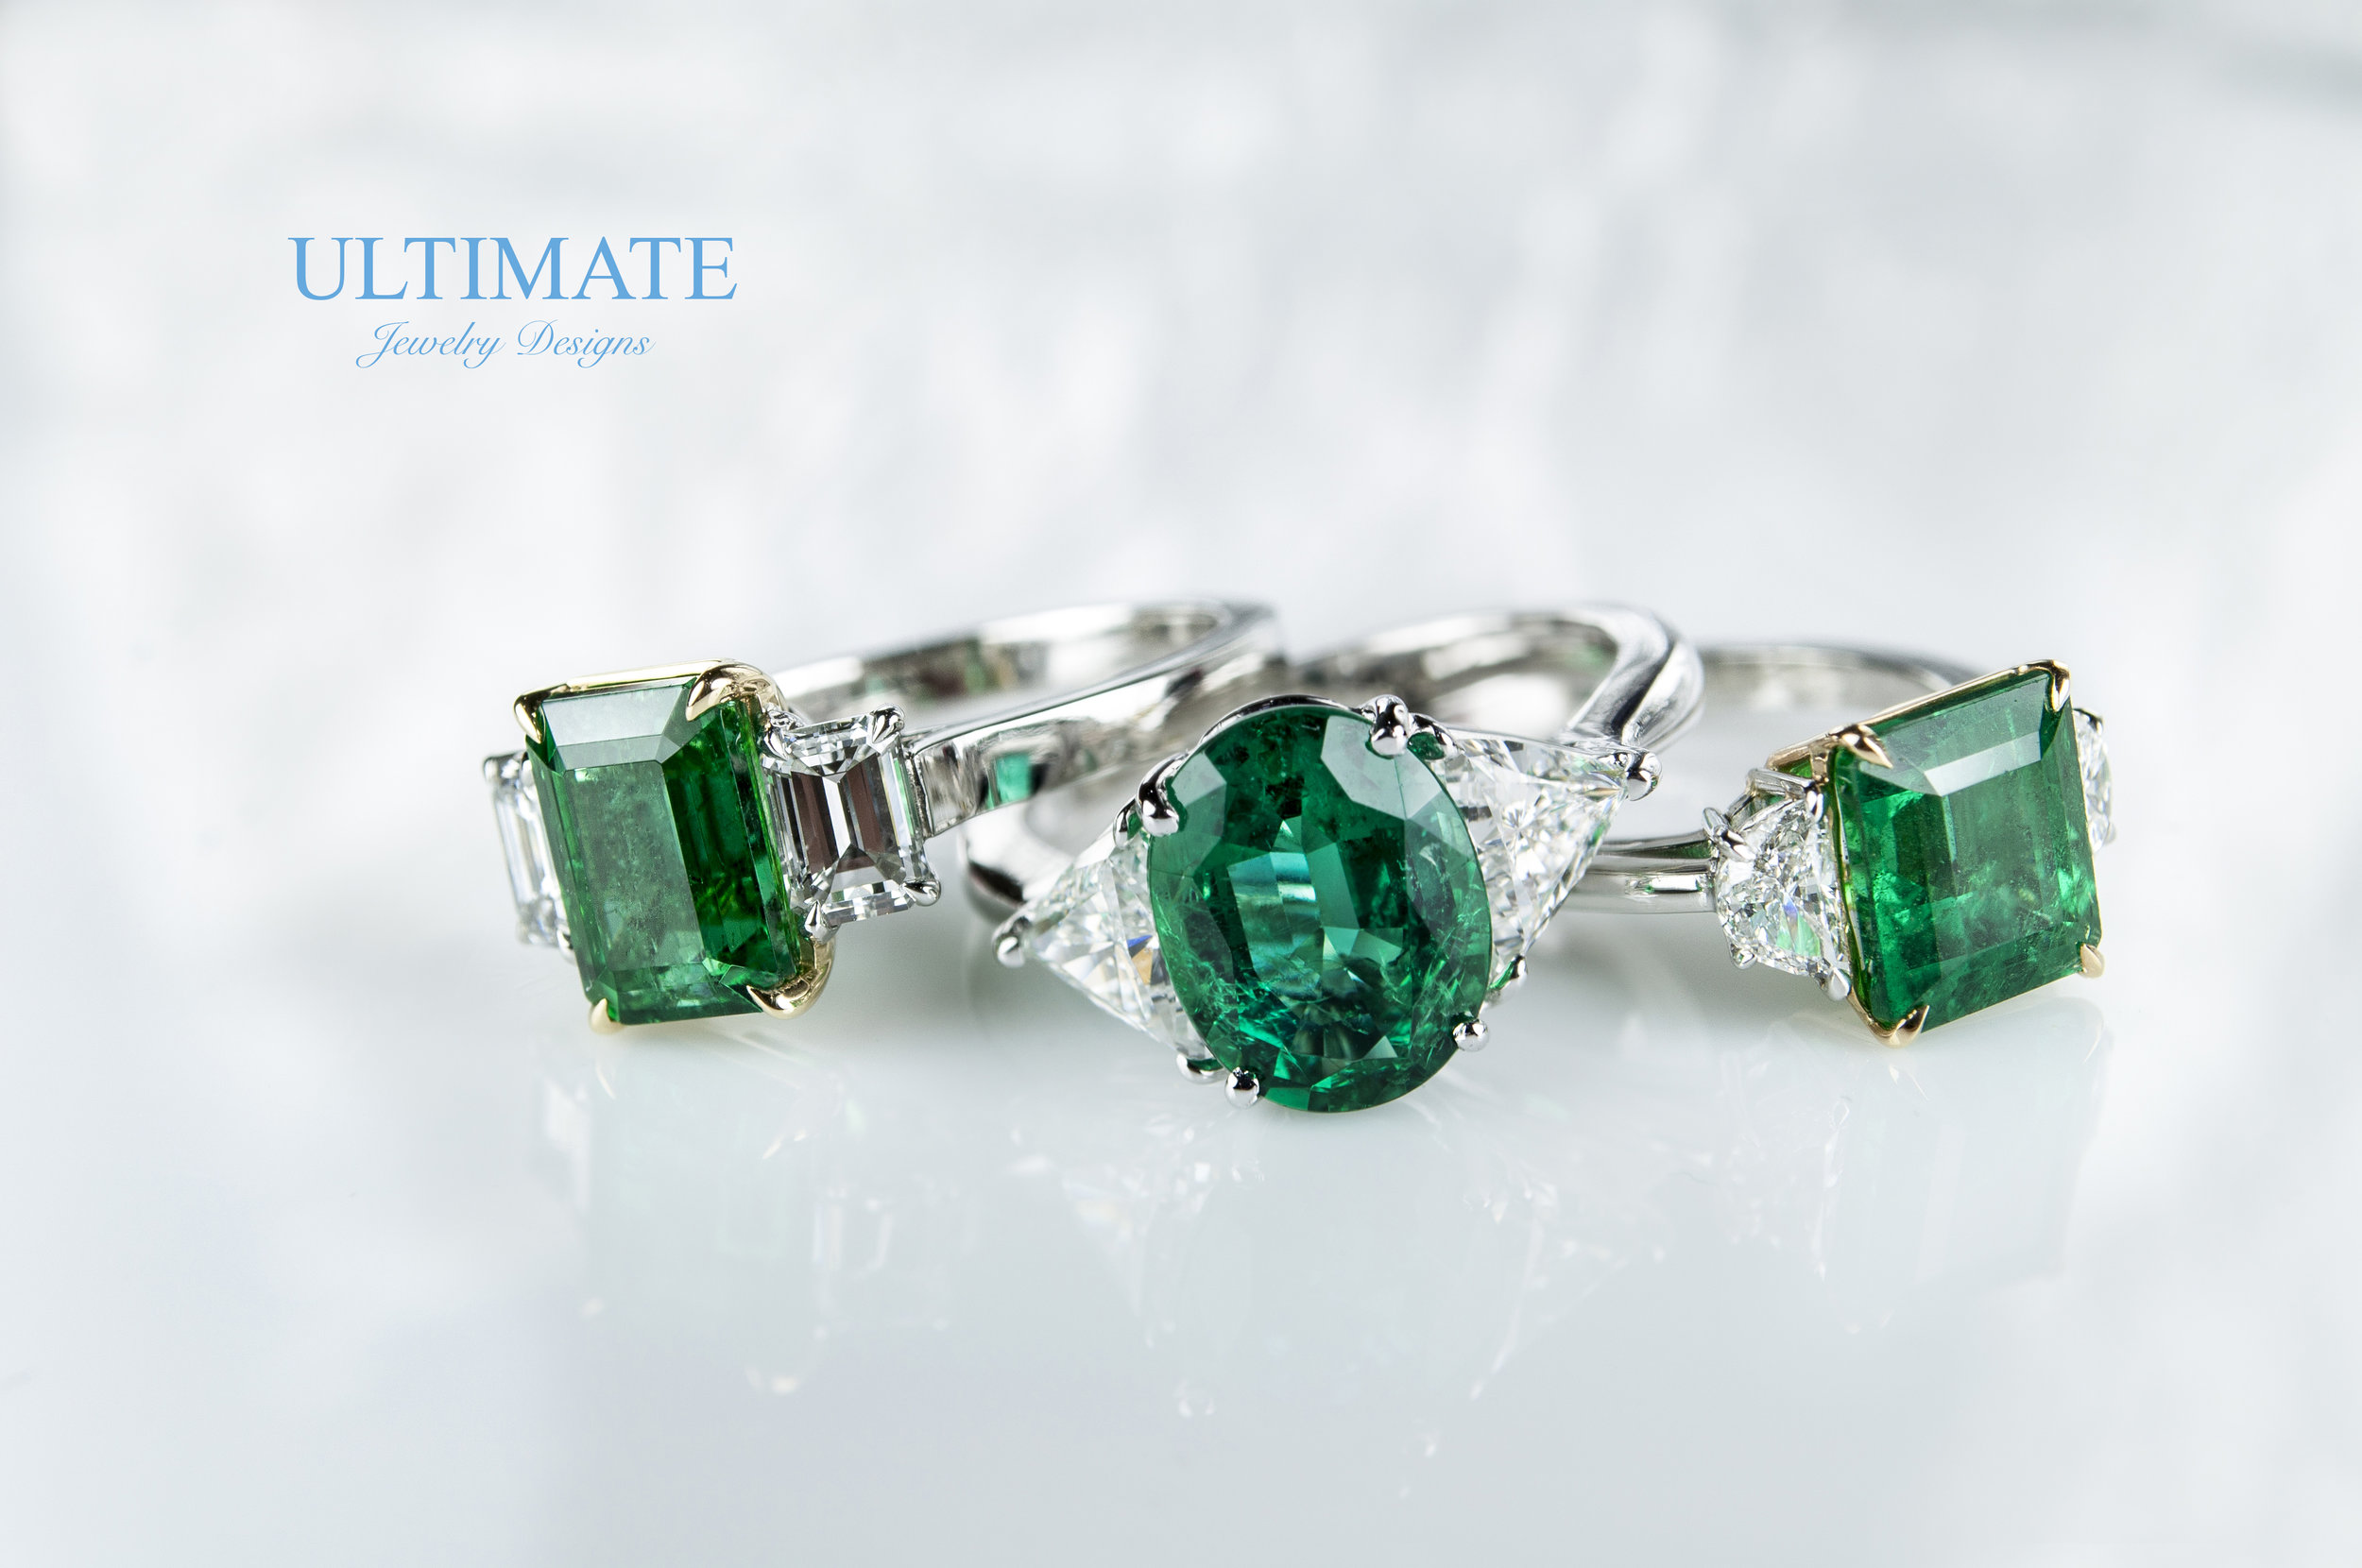 Ultimate Jewelry Designs product photography project